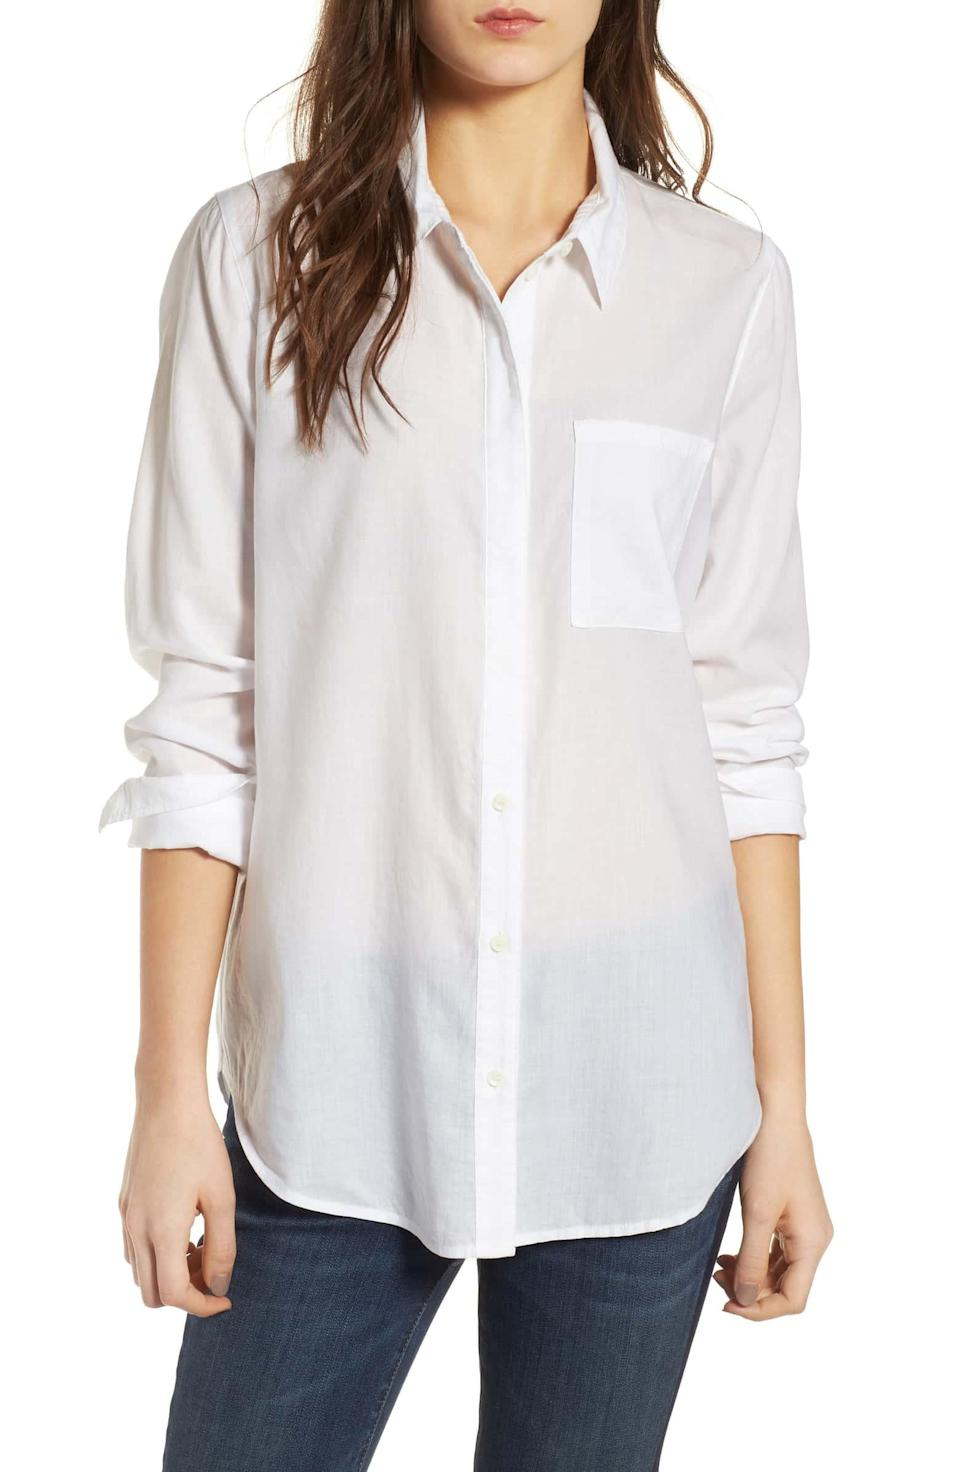 """<h2>Treasure & Bond Drapey Classic Shirt</h2><br><strong>The Best Drapey White Button-Down</strong><br>One of the cooler ways to wear your white button-down is with the slightest hint of it not actually belonging to you. While this is descended from a heteronormative trope that we have most certainly evolved beyond, there remains an air of insouciance in sporting a dress shirt that's ever-so-slightly oversized. We think that's why Treasure & Bond's <a href=""""https://shop.nordstrom.com/s/treasure-bond-drapey-classic-shirt/4403110?origin=keywordsearch-personalizedsort&breadcrumb=Home%2FAll%20Results&color=white"""" rel=""""nofollow noopener"""" target=""""_blank"""" data-ylk=""""slk:Drapey Classic Shirt"""" class=""""link rapid-noclick-resp"""">Drapey Classic Shirt</a> has such a rabid fanbase.<br><br><strong>The Hype: </strong>4 out of 5 stars, 128 reviews on Nordstrom<br><br><strong>What They're Saying: </strong>""""So beautiful. I've been working hard on making my capsule/classic wardrobe. I have a shopping list that stays in my purse so that I can find the perfect piece that will last for years. This shirt is so divine. It feels incredible against my skin. The drapey aspect of the shirt flatters my bigger chest and apple body. It's a little sheer, but I sized up so that it flows. I may wear a shirt underneath but I may not."""" <br><br><strong>Treasure & Bond</strong> Drapey Classic Shirt, $, available at <a href=""""https://go.skimresources.com/?id=30283X879131&url=https%3A%2F%2Fshop.nordstrom.com%2Fs%2Ftreasure-bond-drapey-classic-shirt%2F4403110%3Forigin%3Dkeywordsearch-personalizedsort%26breadcrumb%3DHome%252FAll%2520Results%26color%3Dwhite"""" rel=""""nofollow noopener"""" target=""""_blank"""" data-ylk=""""slk:Nordstrom"""" class=""""link rapid-noclick-resp"""">Nordstrom</a>"""